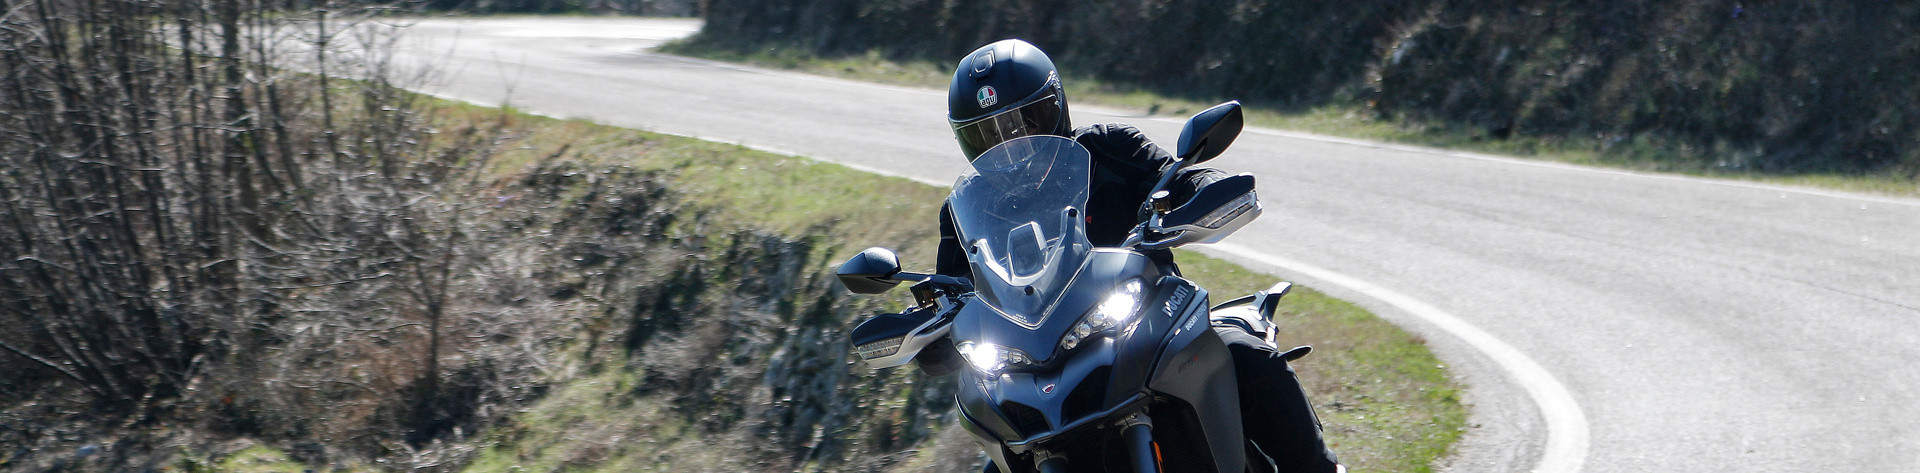 AGV Riding style - Touring